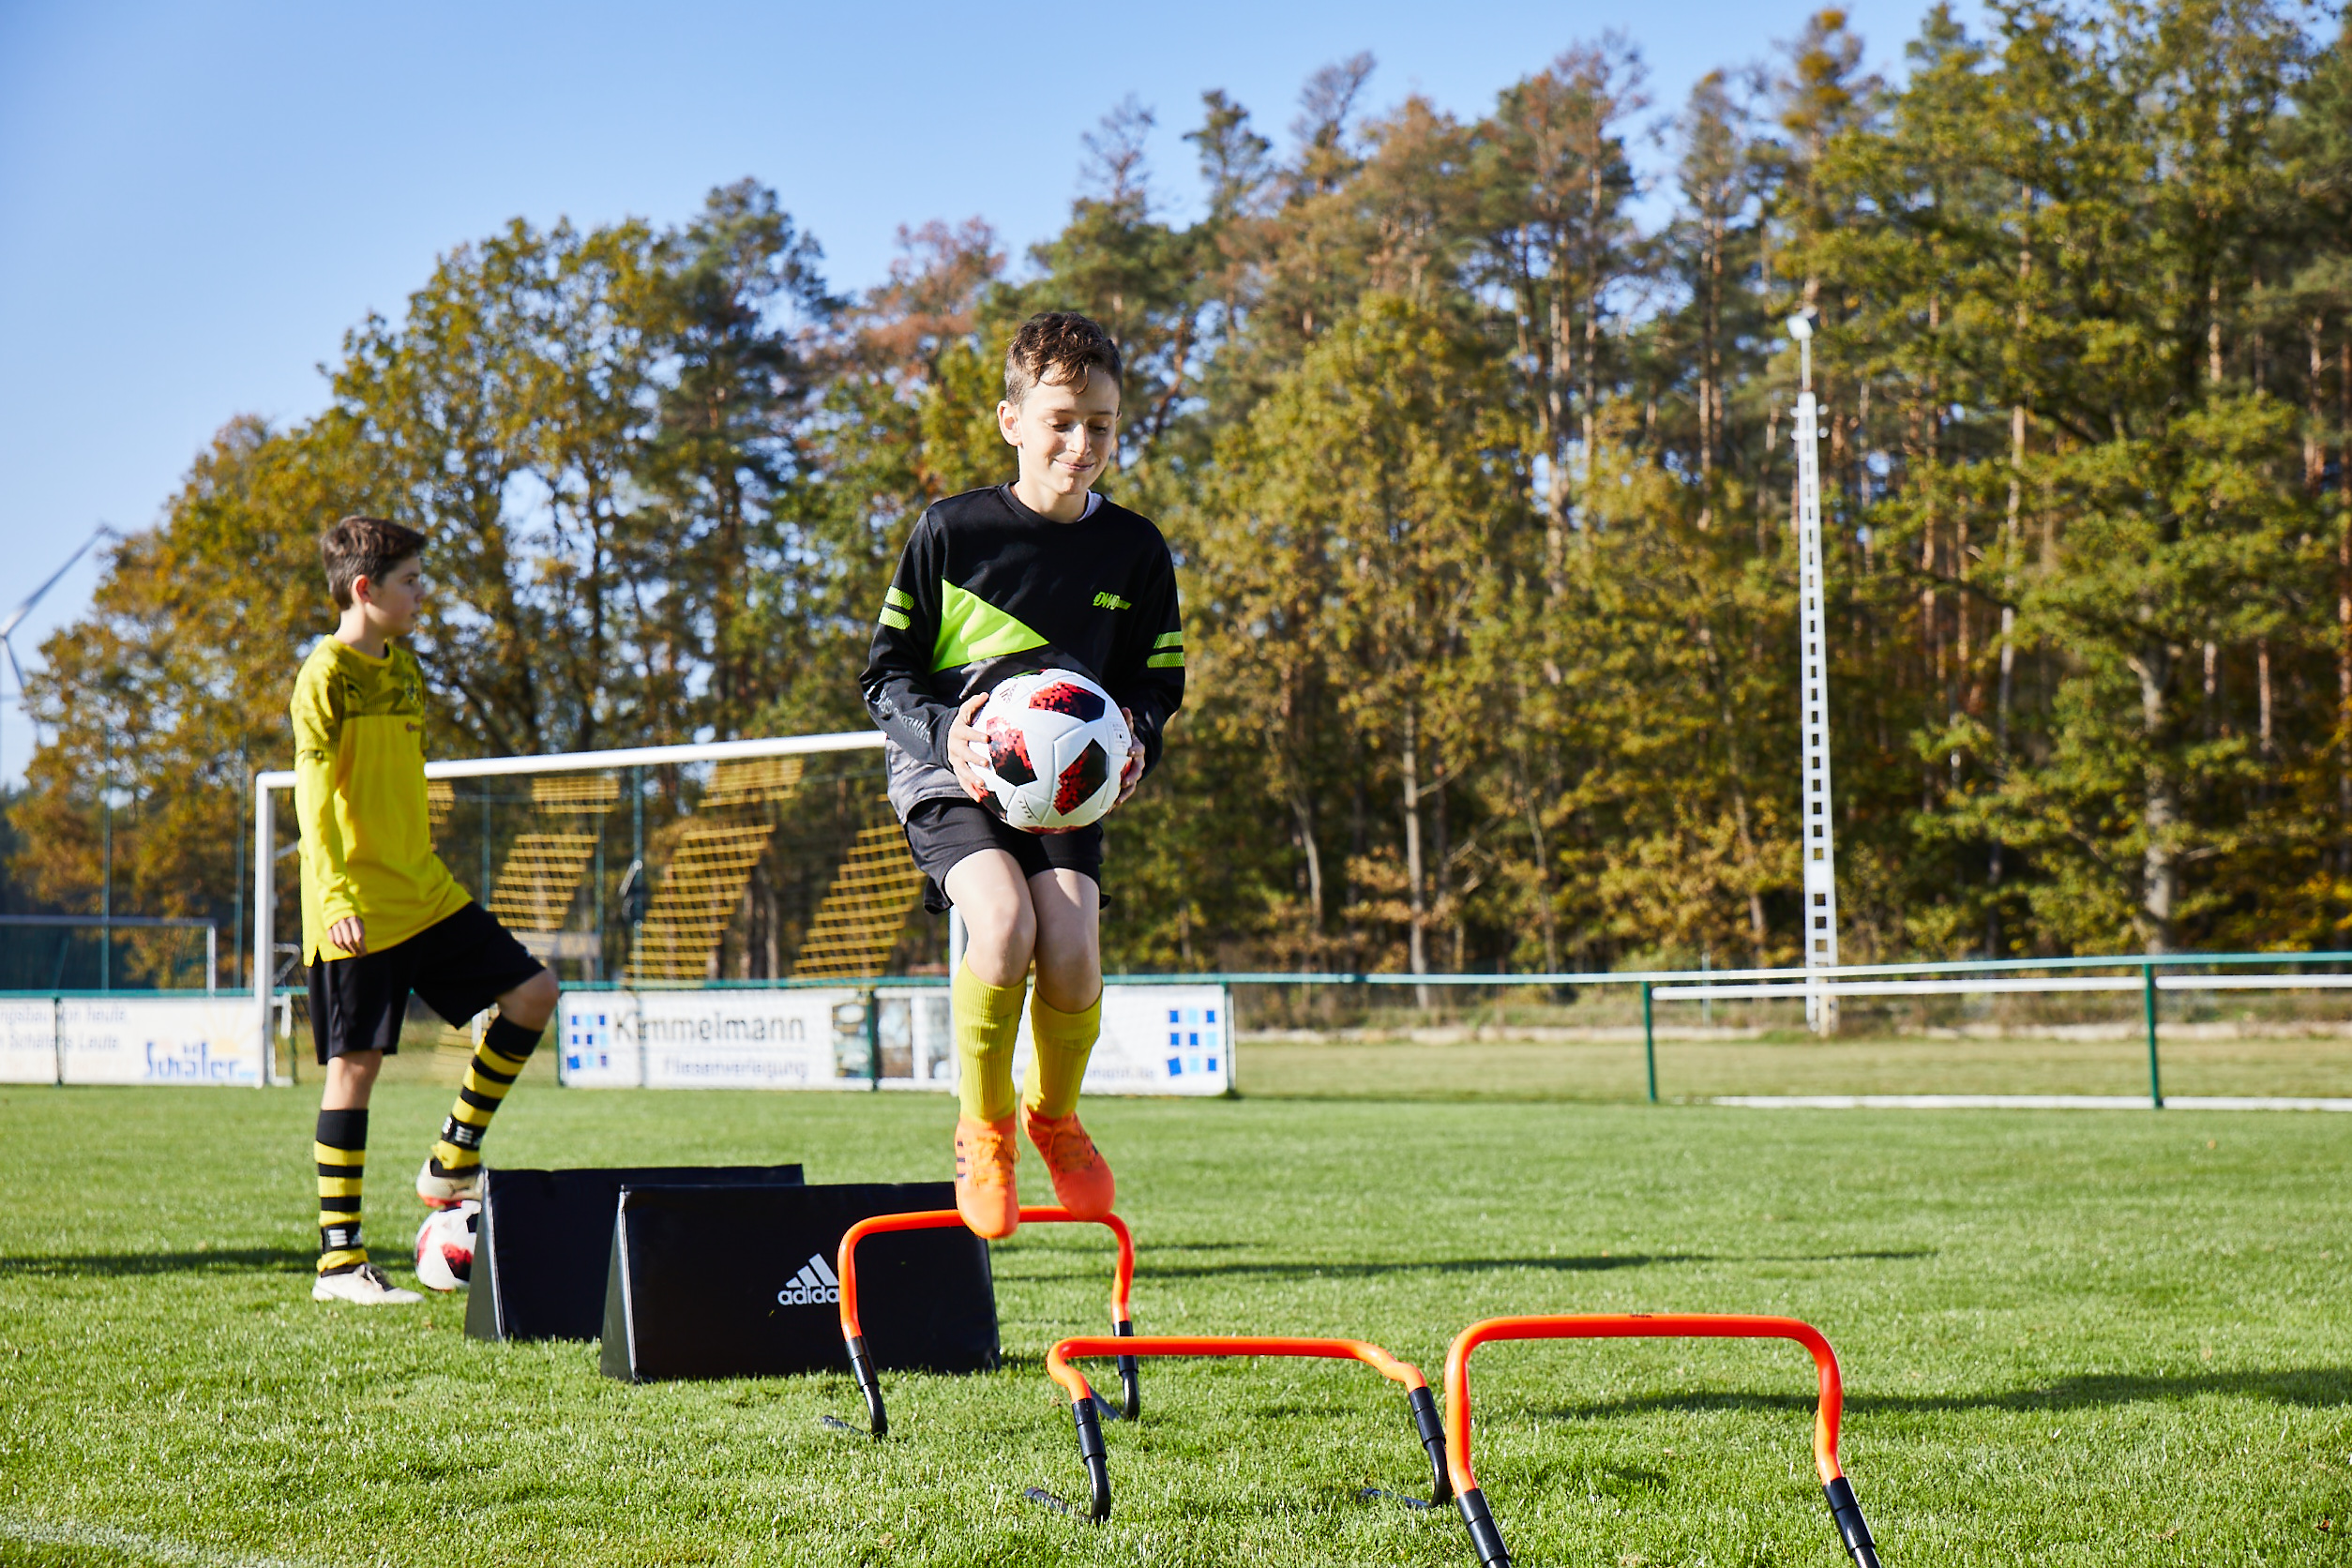 Fussball_Kids_0538